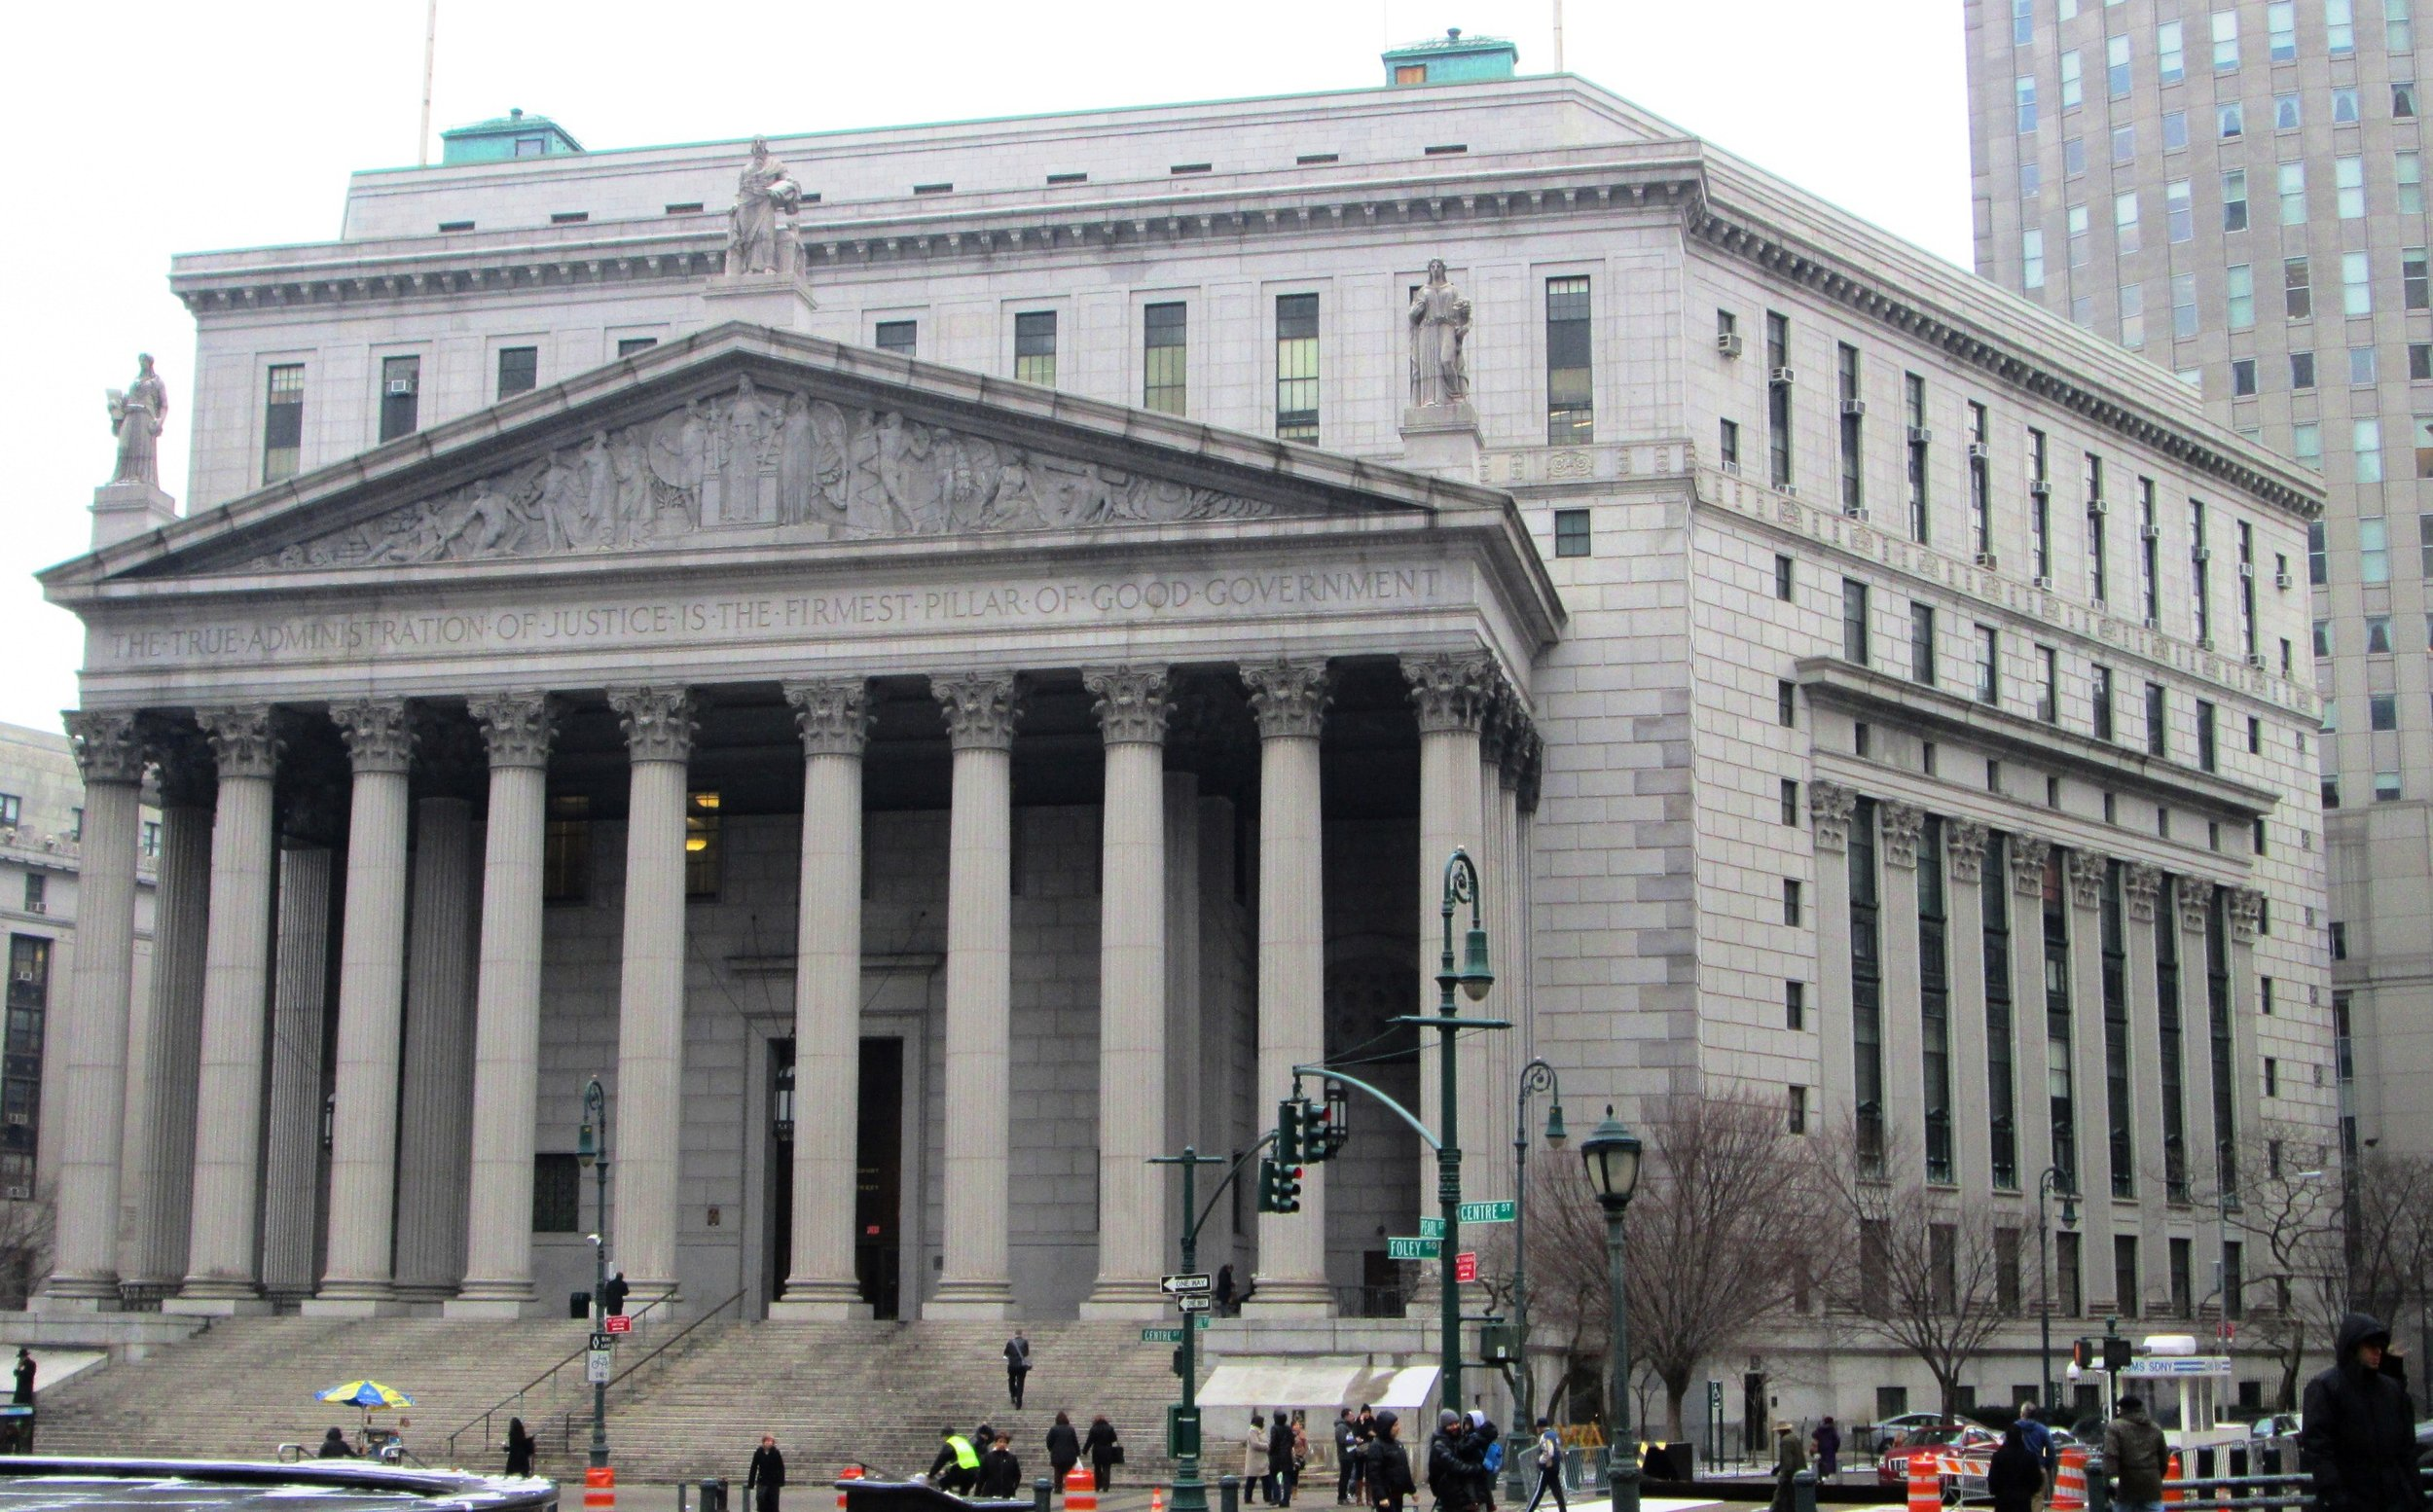 New_York_State_Supreme_Courthouse_60_Centre_Street_from_southwest.jpg